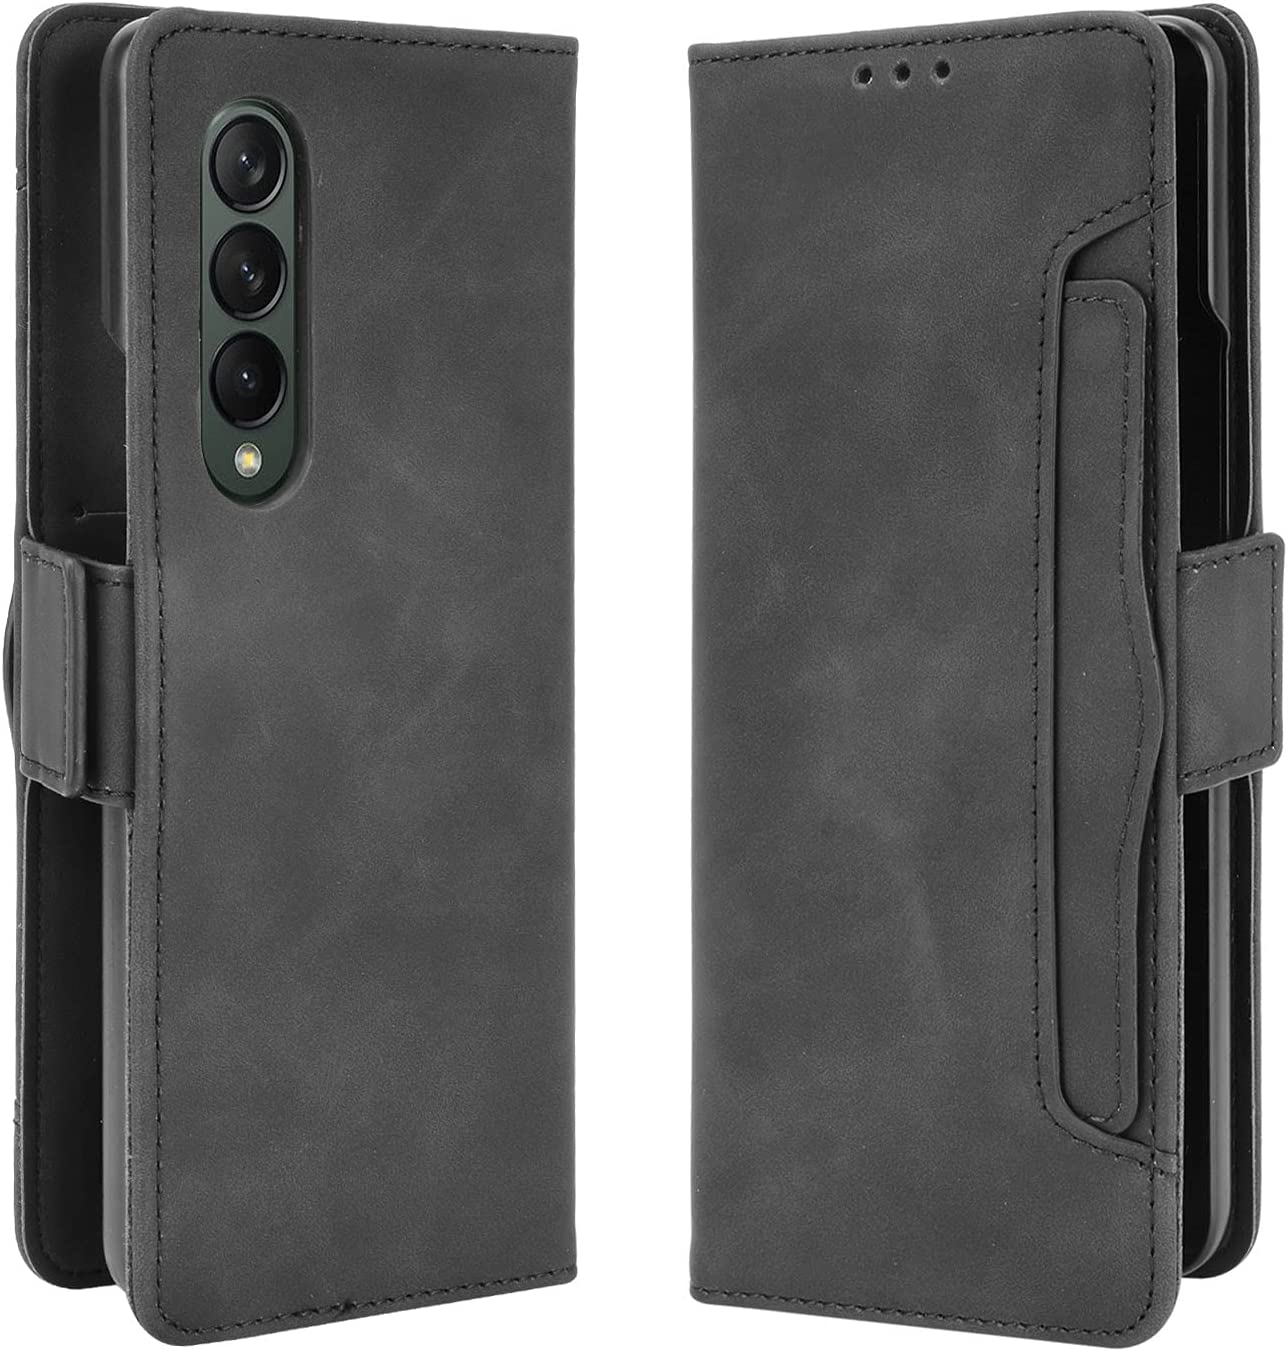 DAMONDY for Samsung Z Fold 3 Case, Galaxy Z Fold 3 5G Wallet Case, Leather Magnetic Cover Kickstand Card Slot with TPU Cover Compatible with Samsung Galaxy Z Fold 3 5G -Black